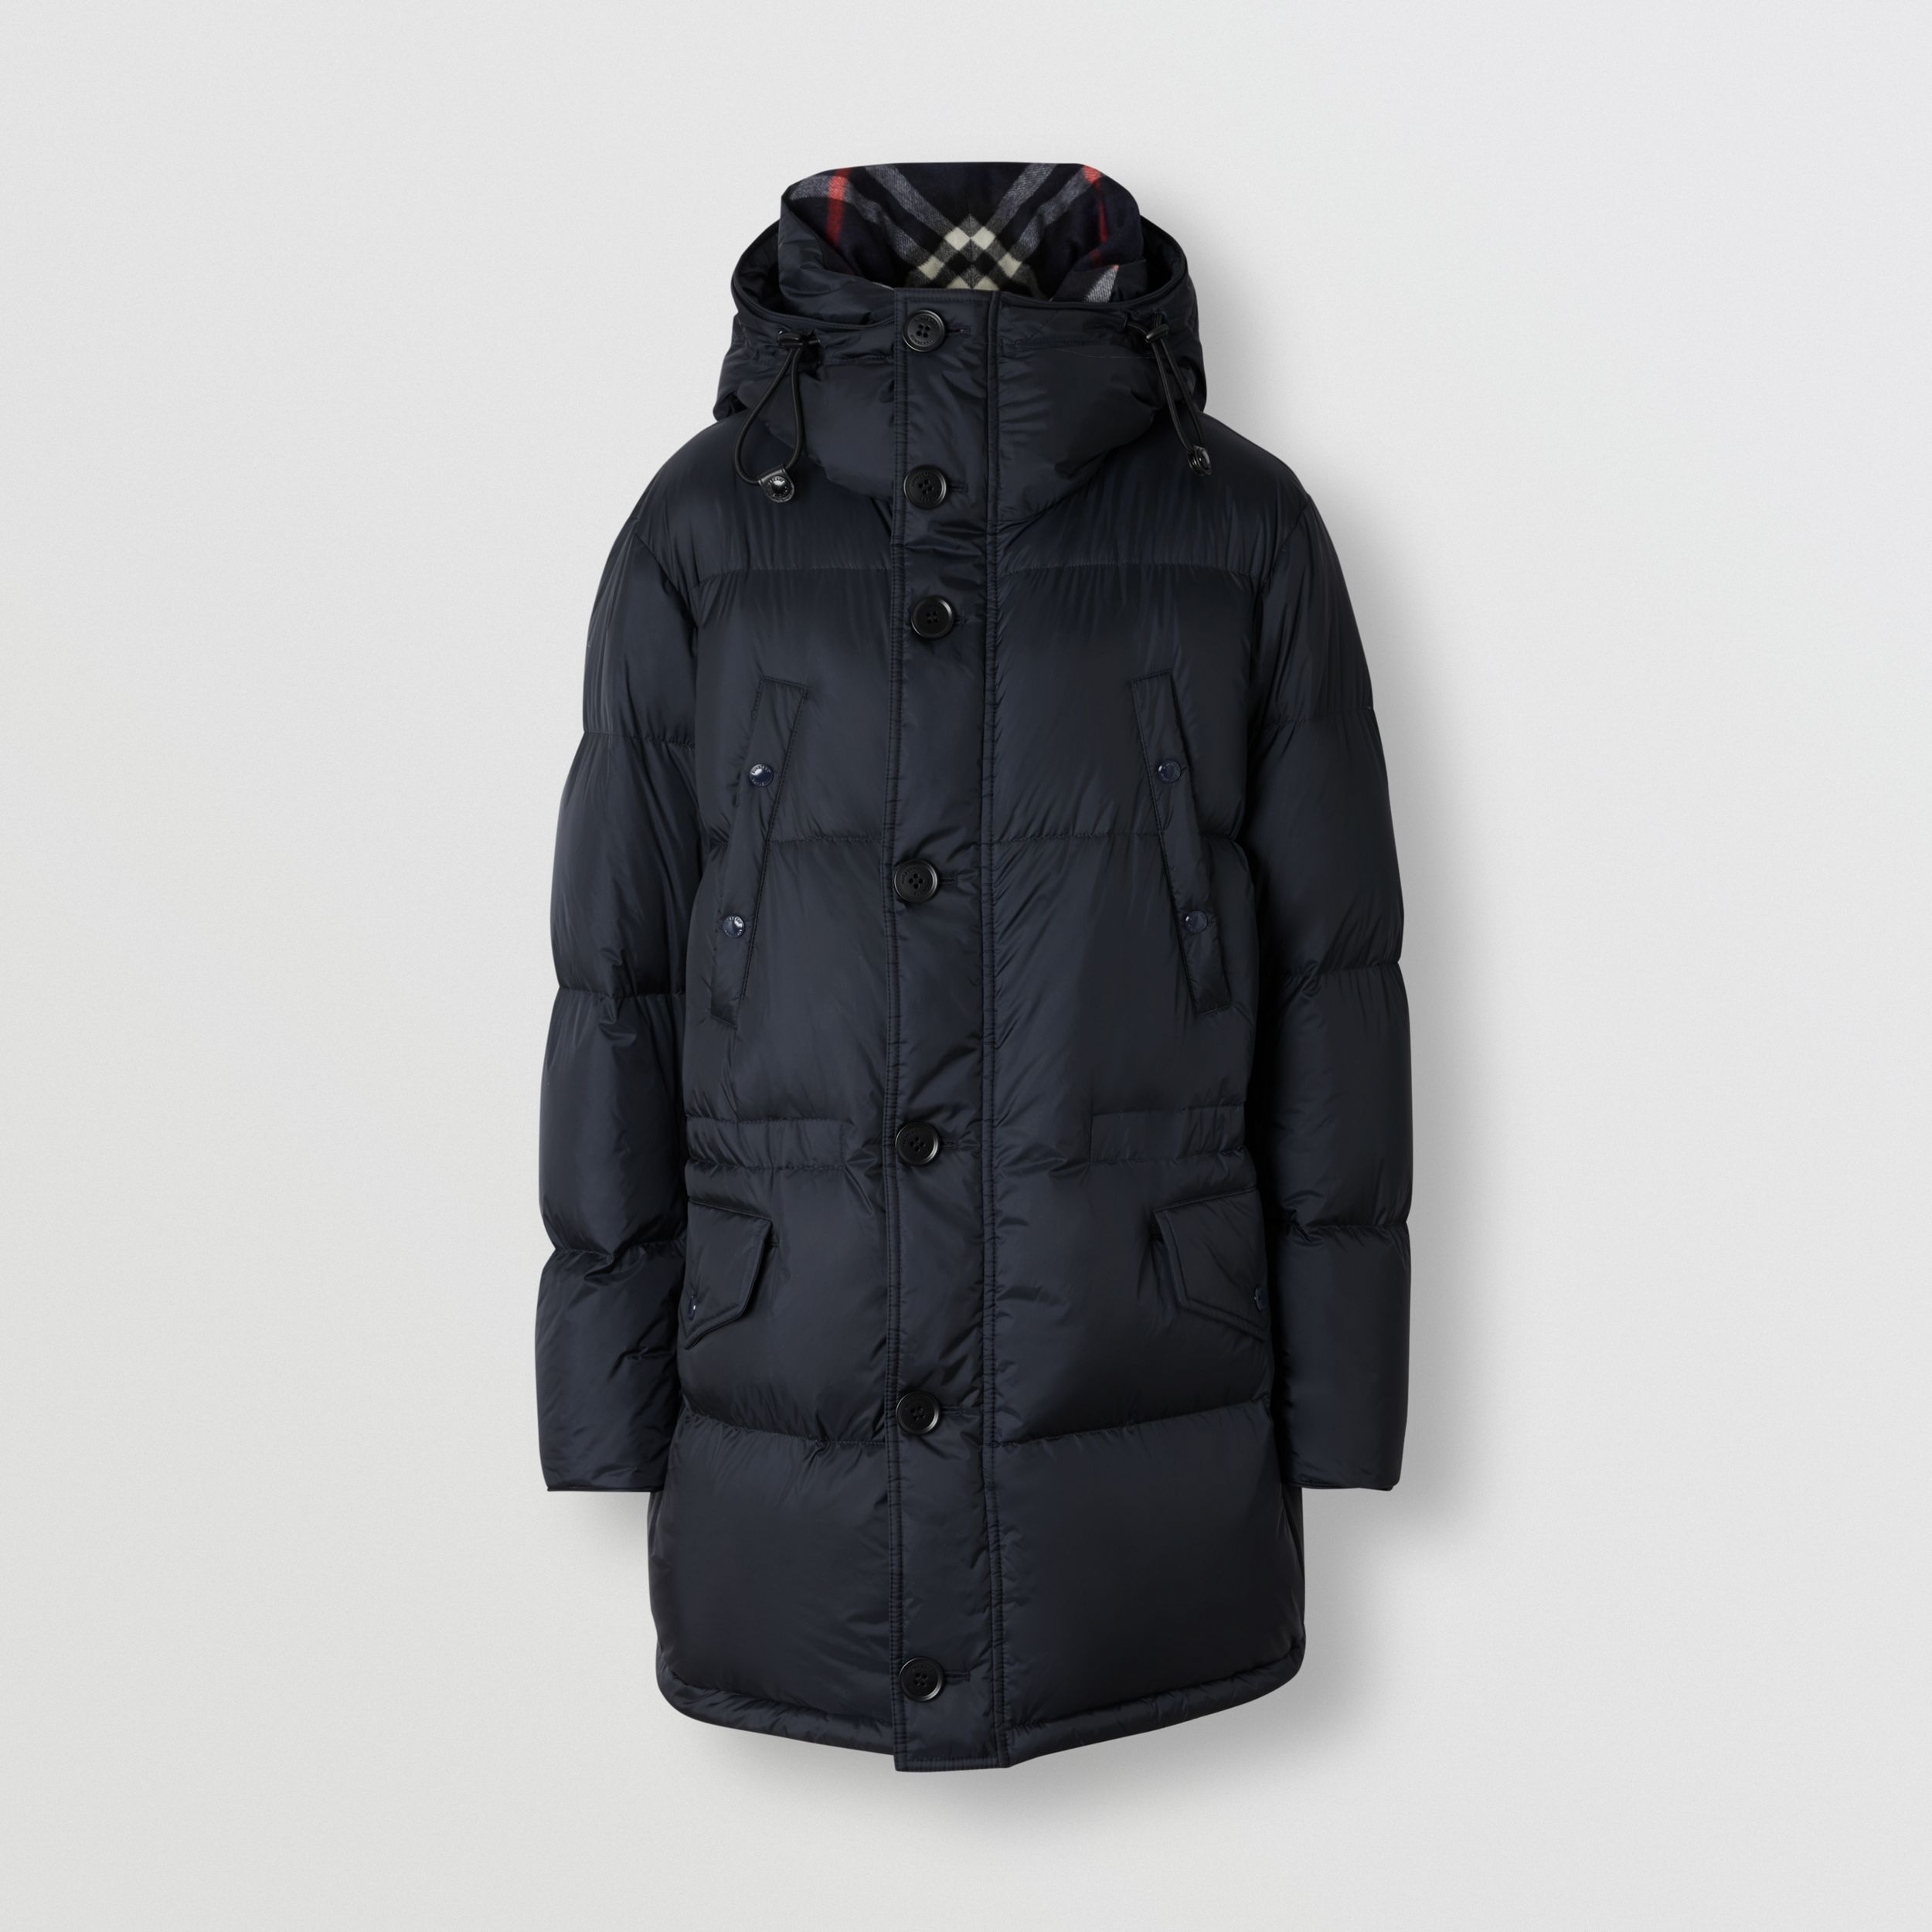 Logo Detail Hooded Puffer Coat in Navy - Men | Burberry - 4